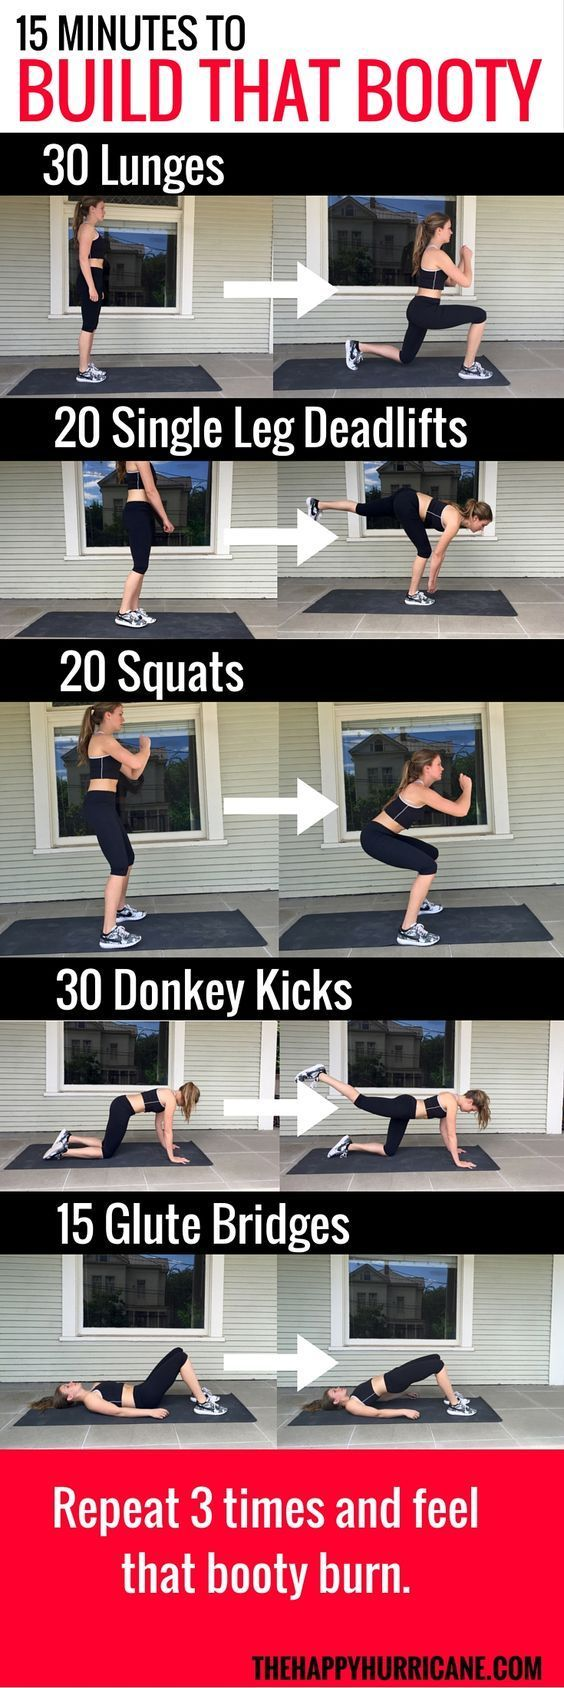 Here's a 15 minute booty workout to help you get the perfect pageant butt. Get more tips and ideas at ThePageantPlanet.com! #ad